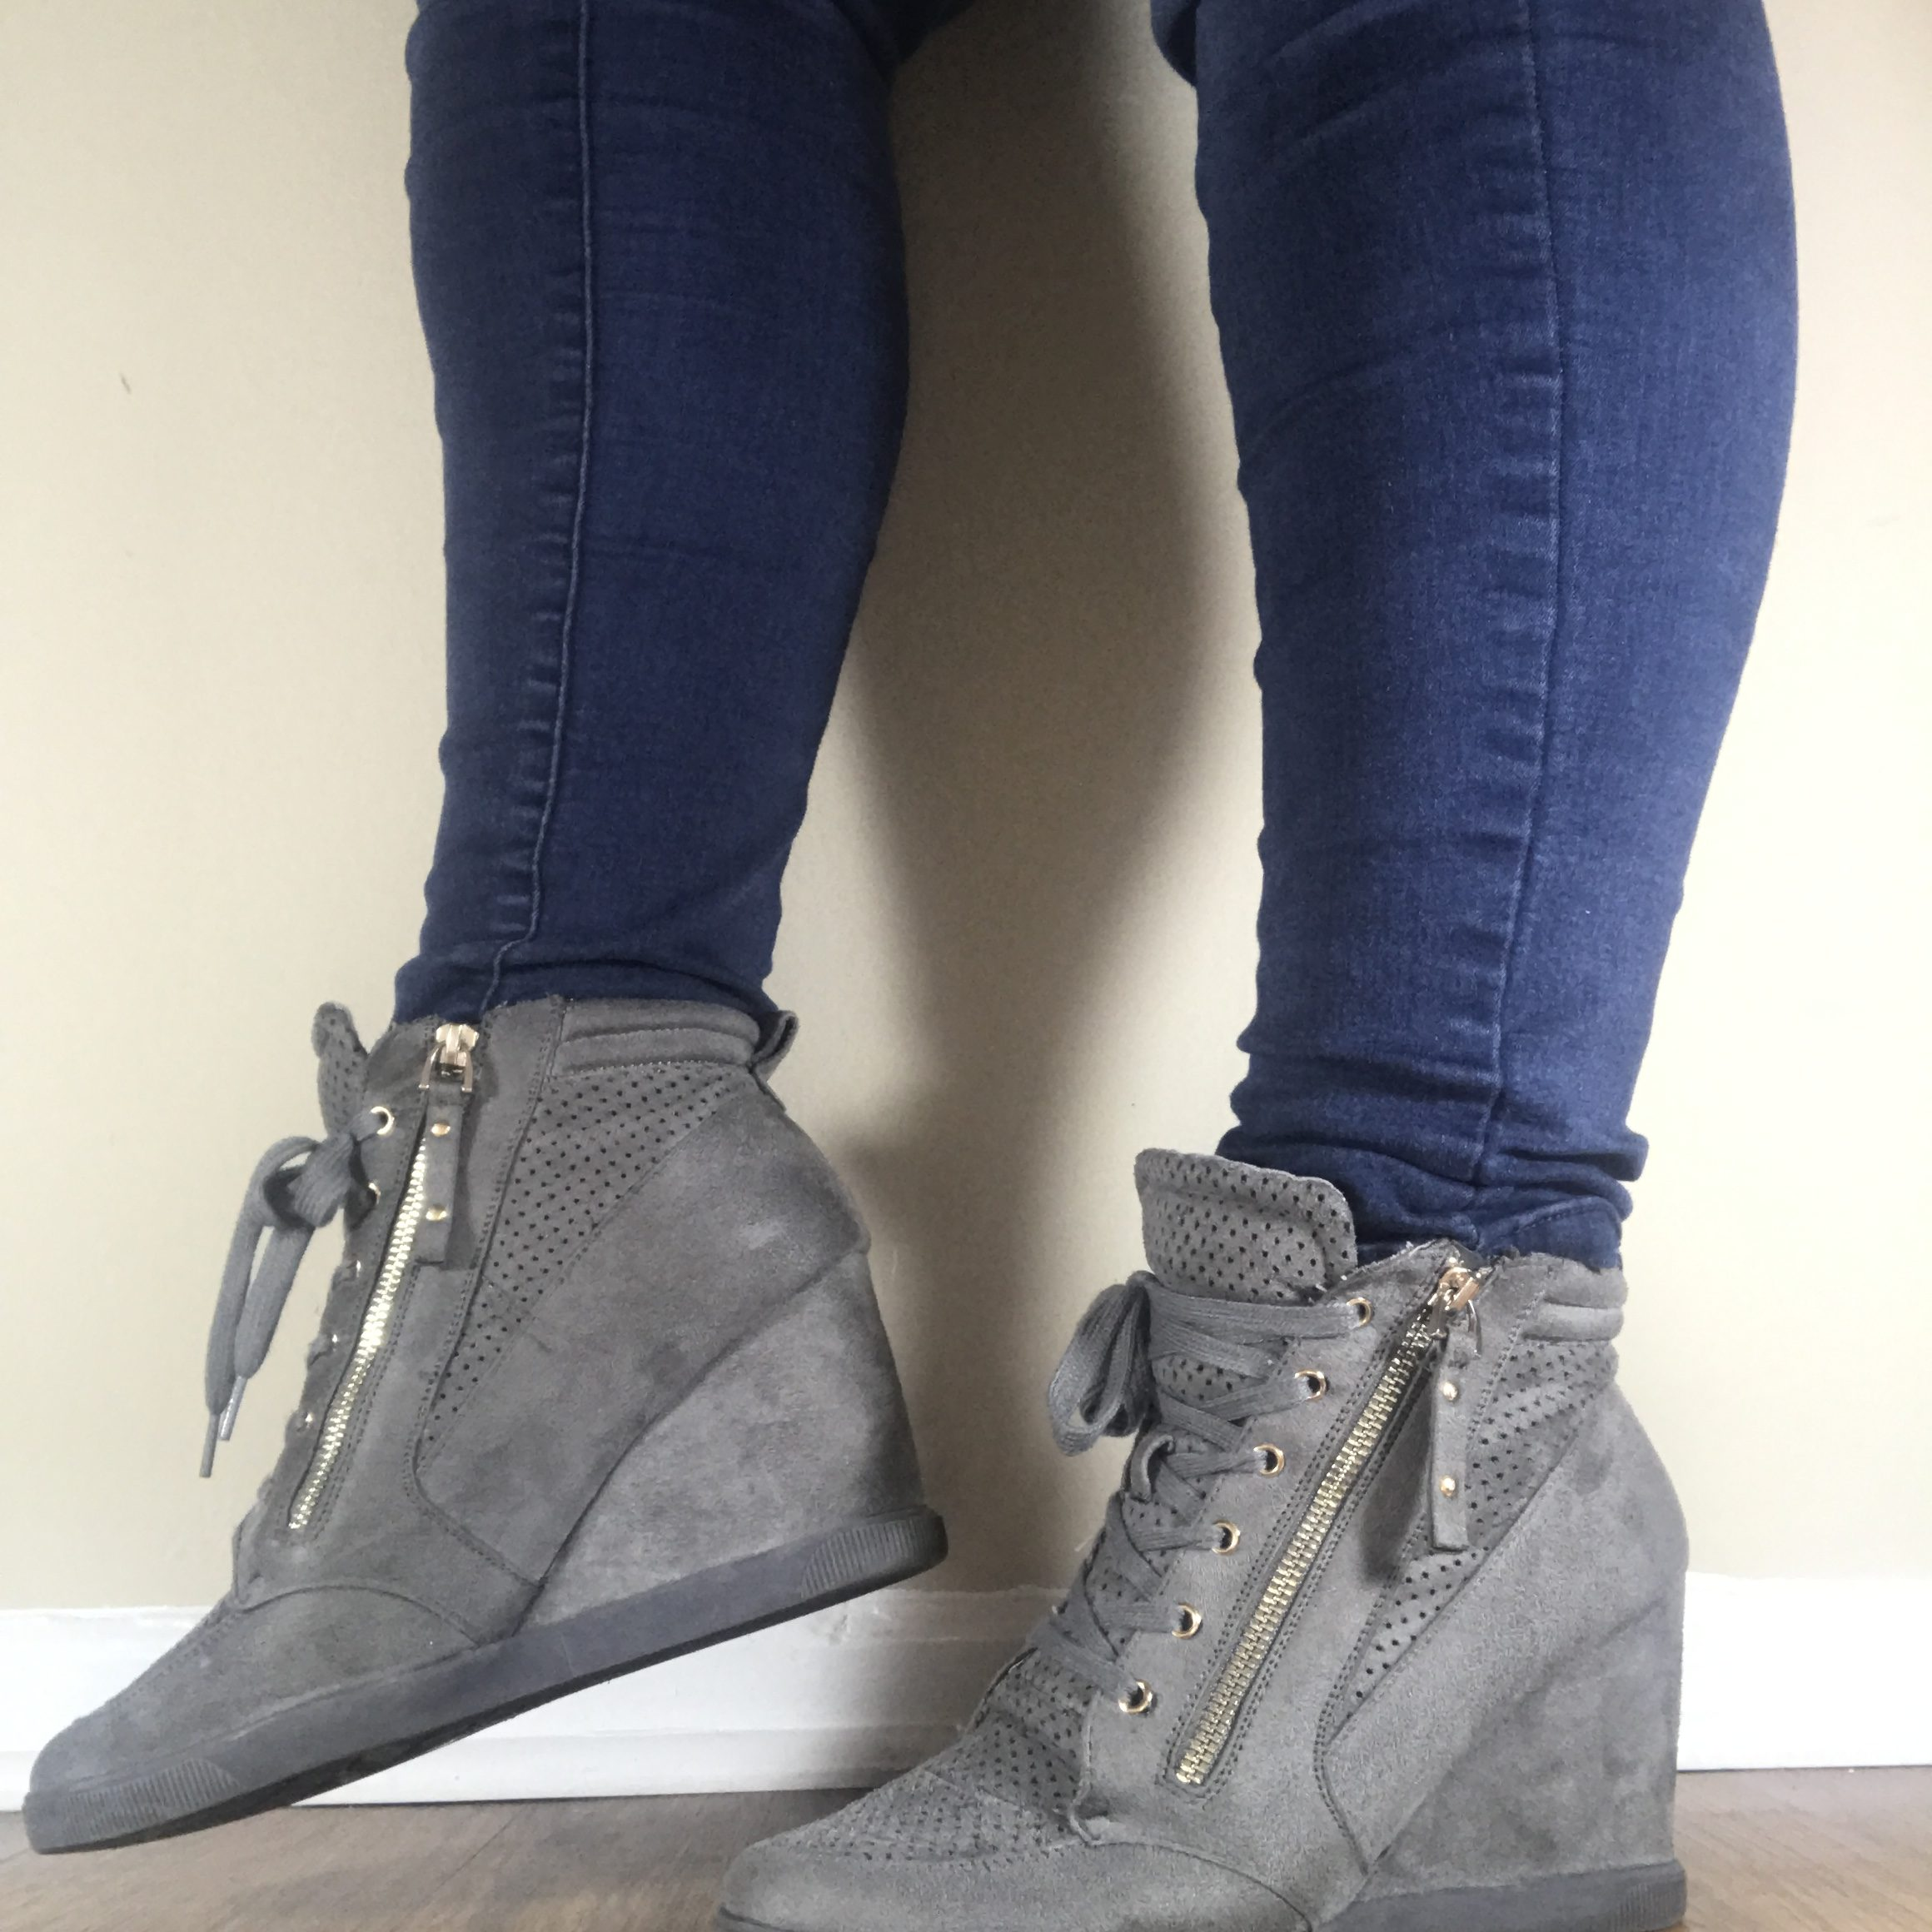 Wedge Sneakers- Say Hello to the New